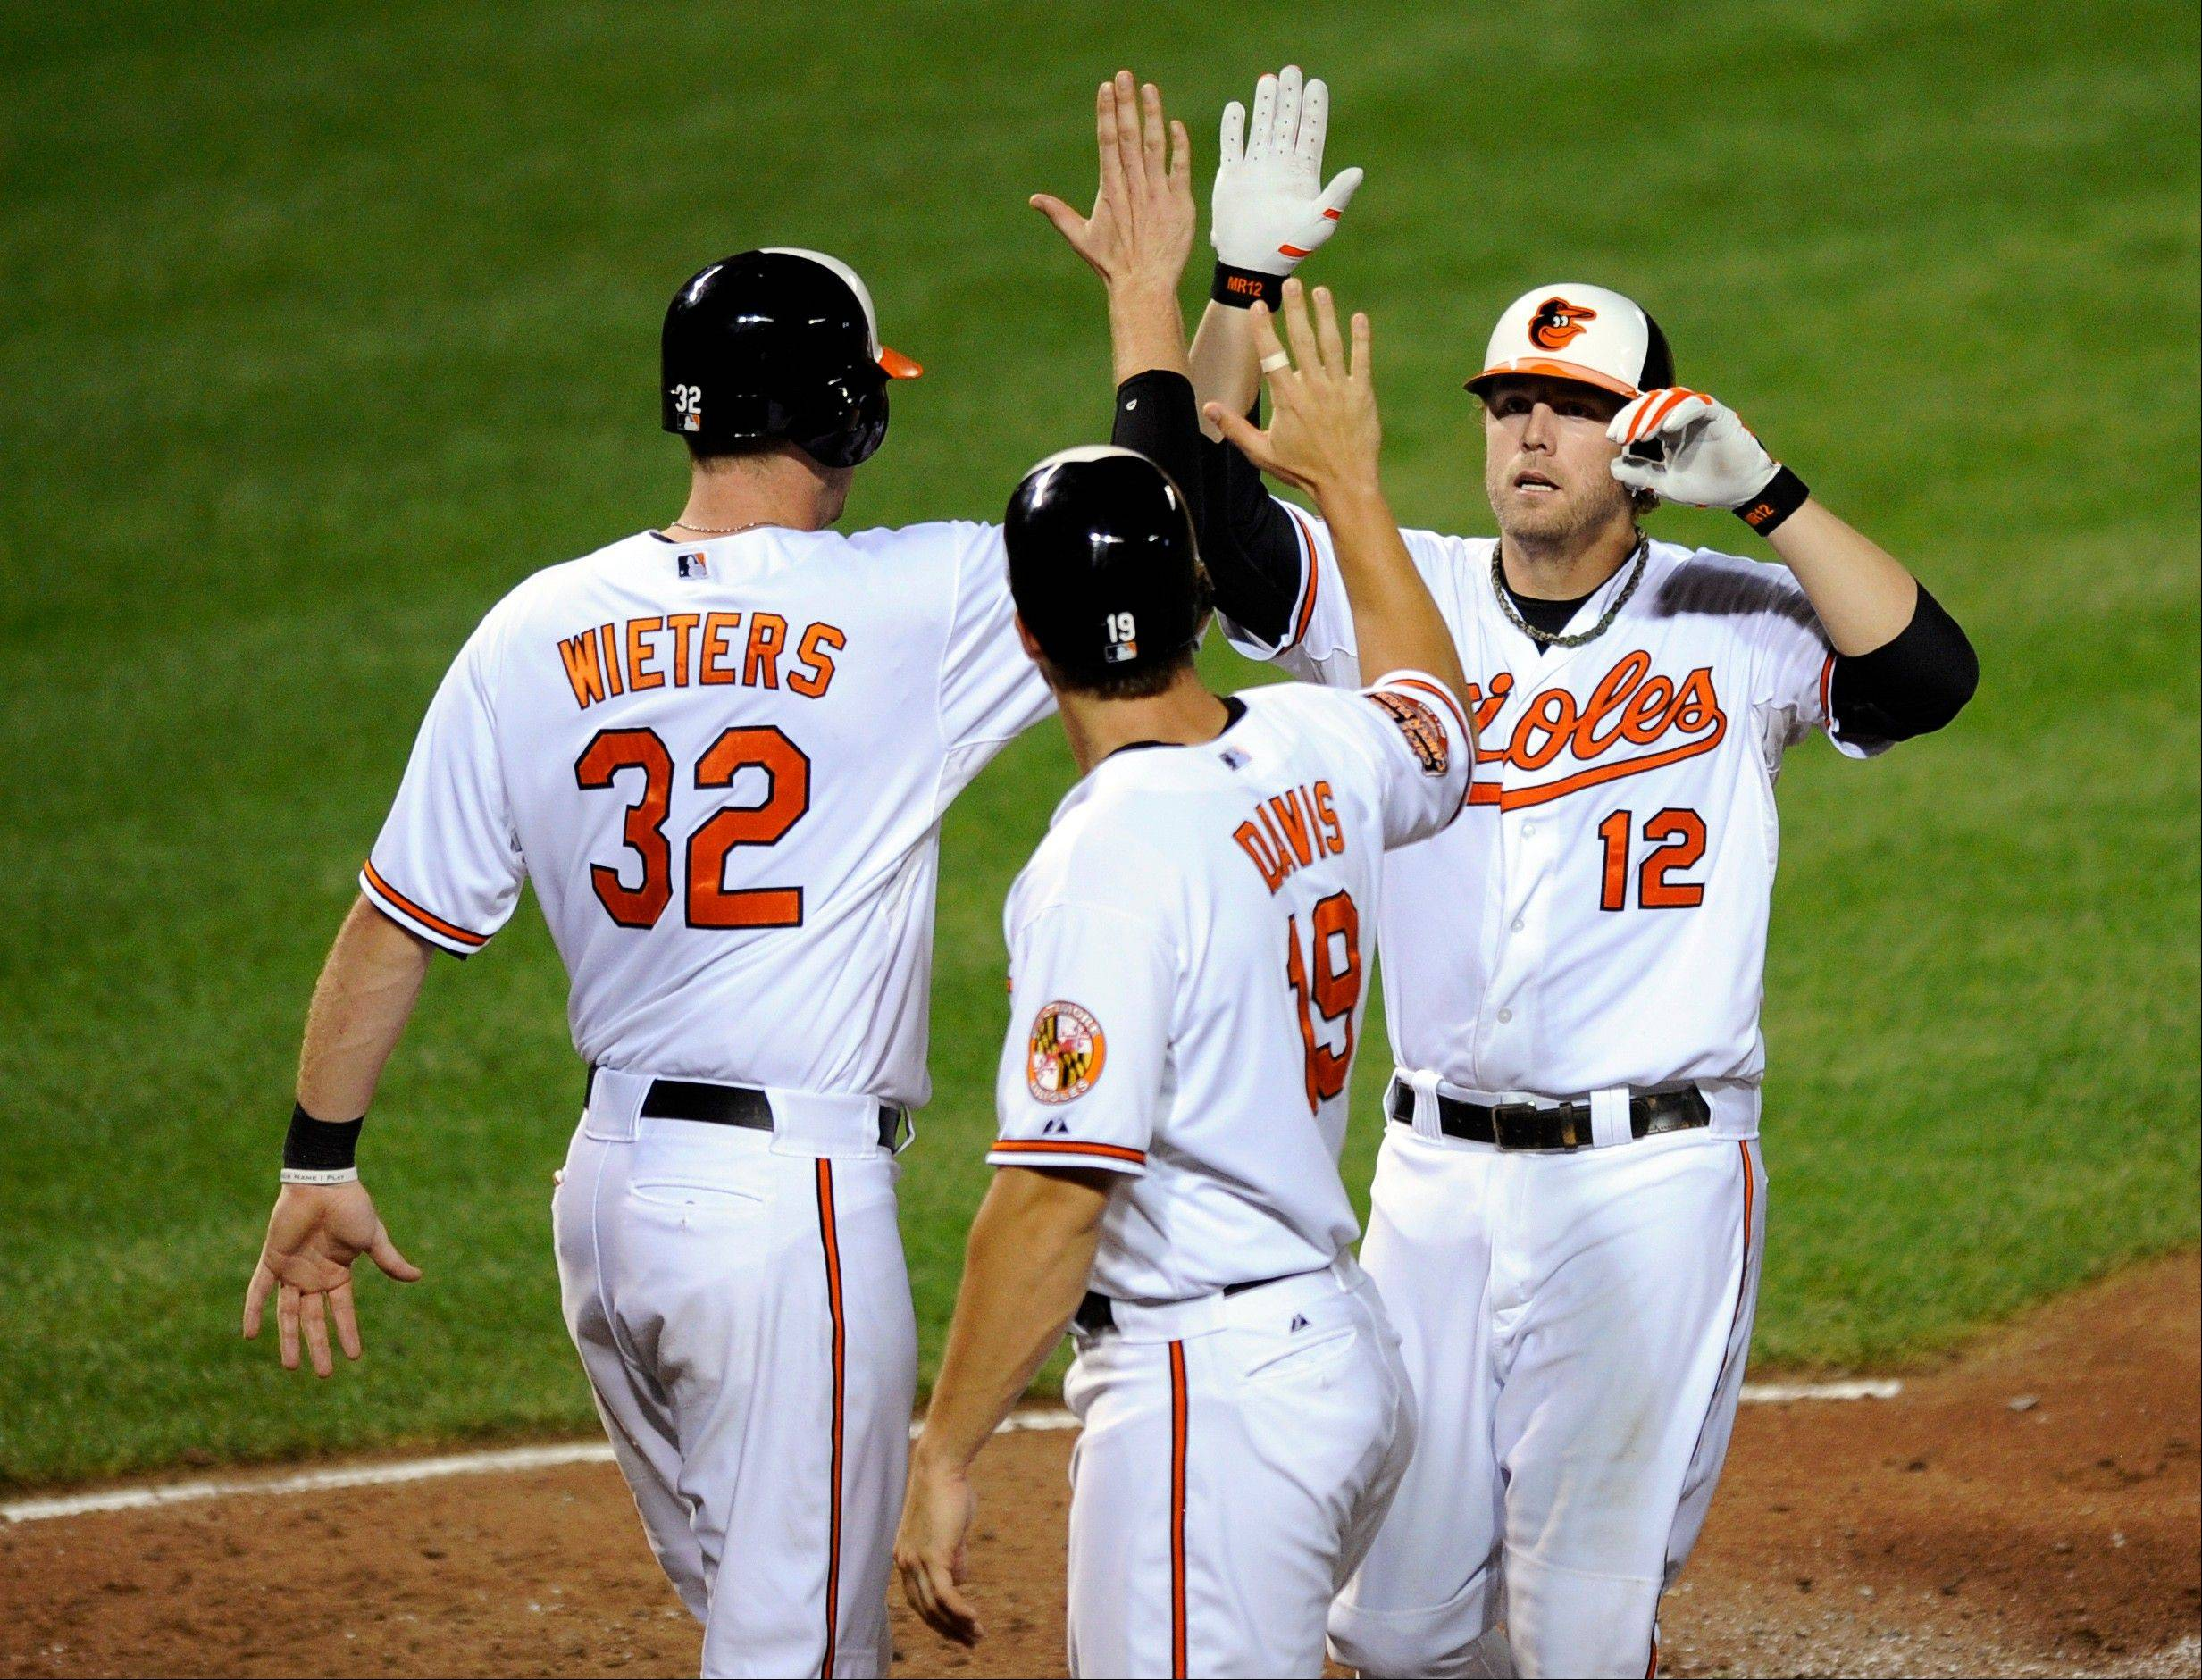 The Baltimore Orioles' Mark Reynolds (12) celebrates his three-run home run with Matt Wieters (32) and Chris Davis (19) Tuesday during the sixth inning against the Boston Red Sox.